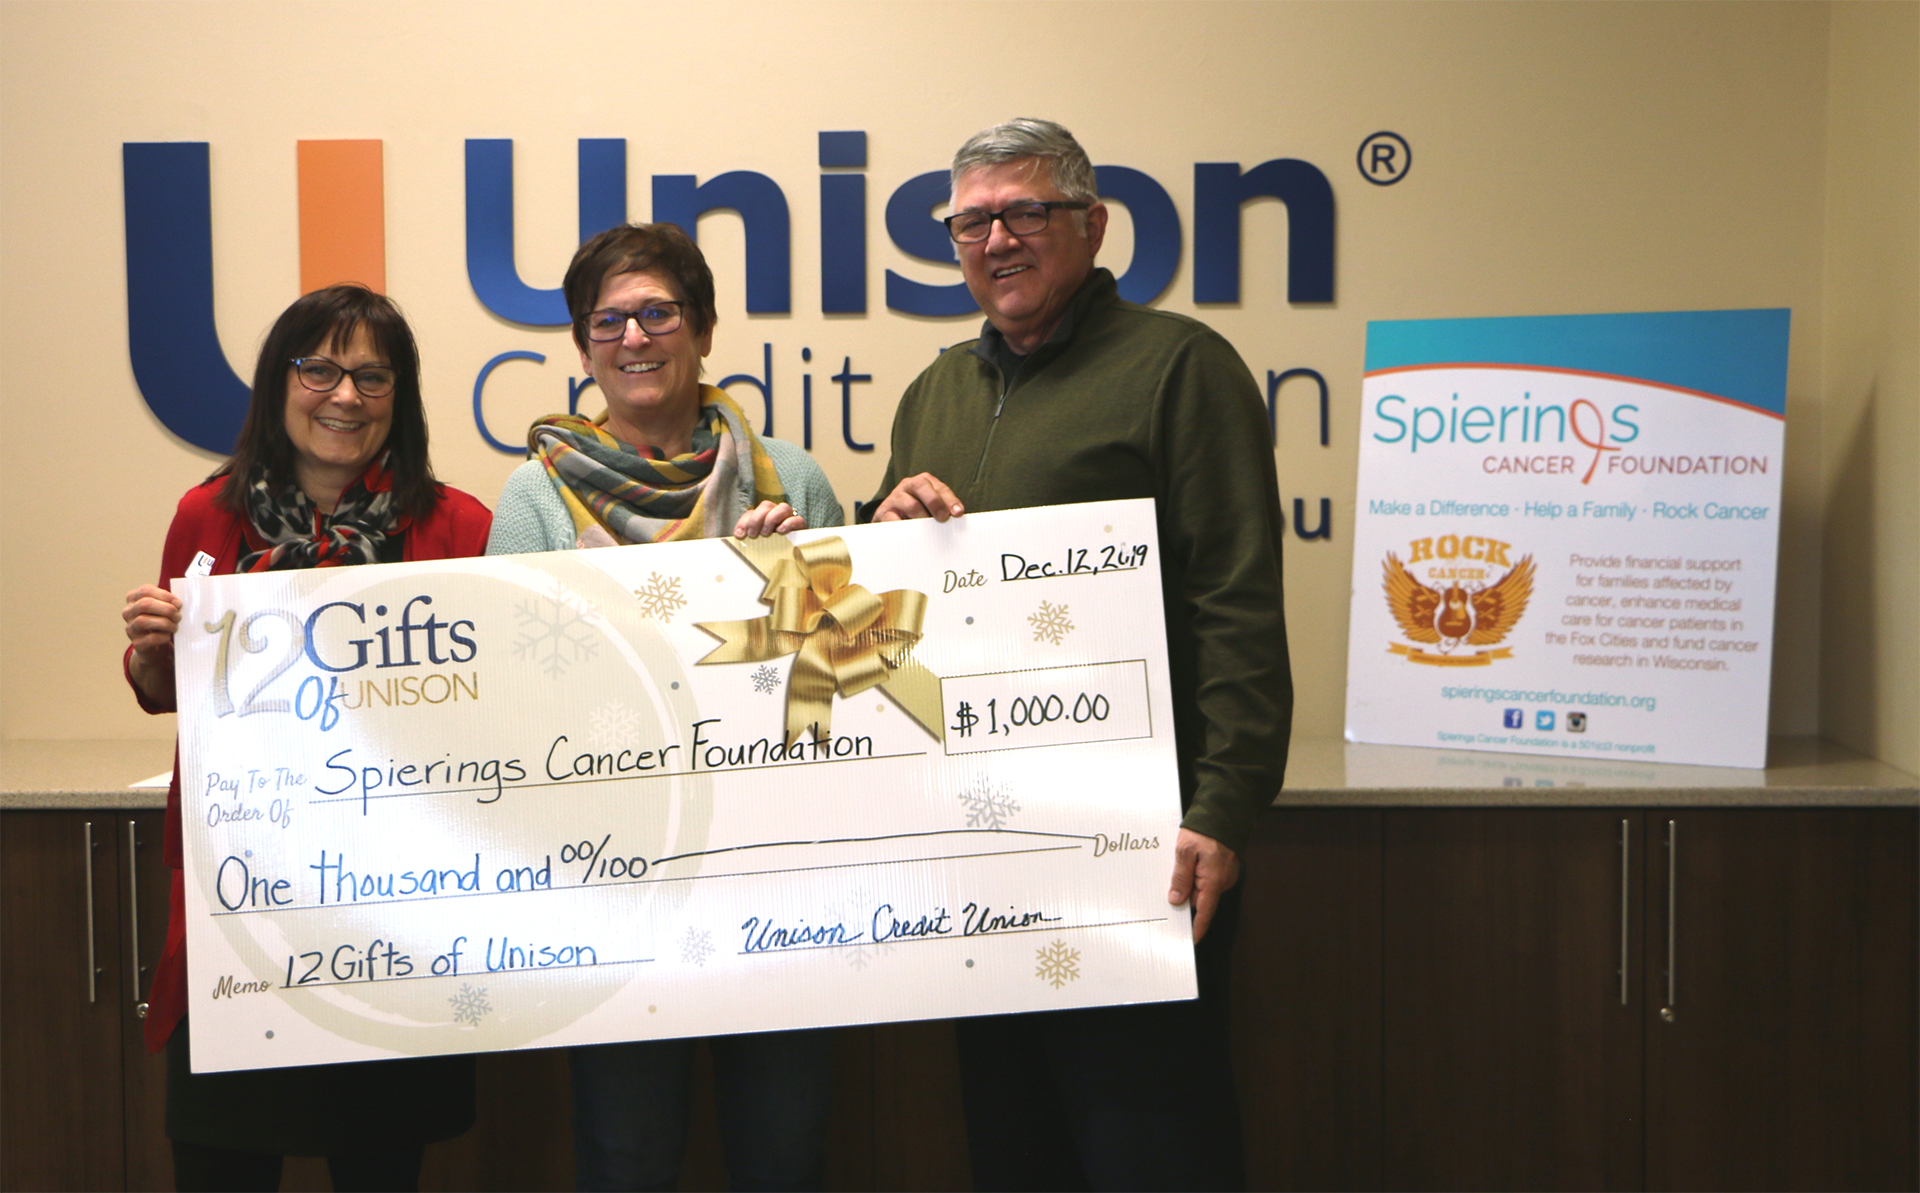 spierings getting donation check from unison